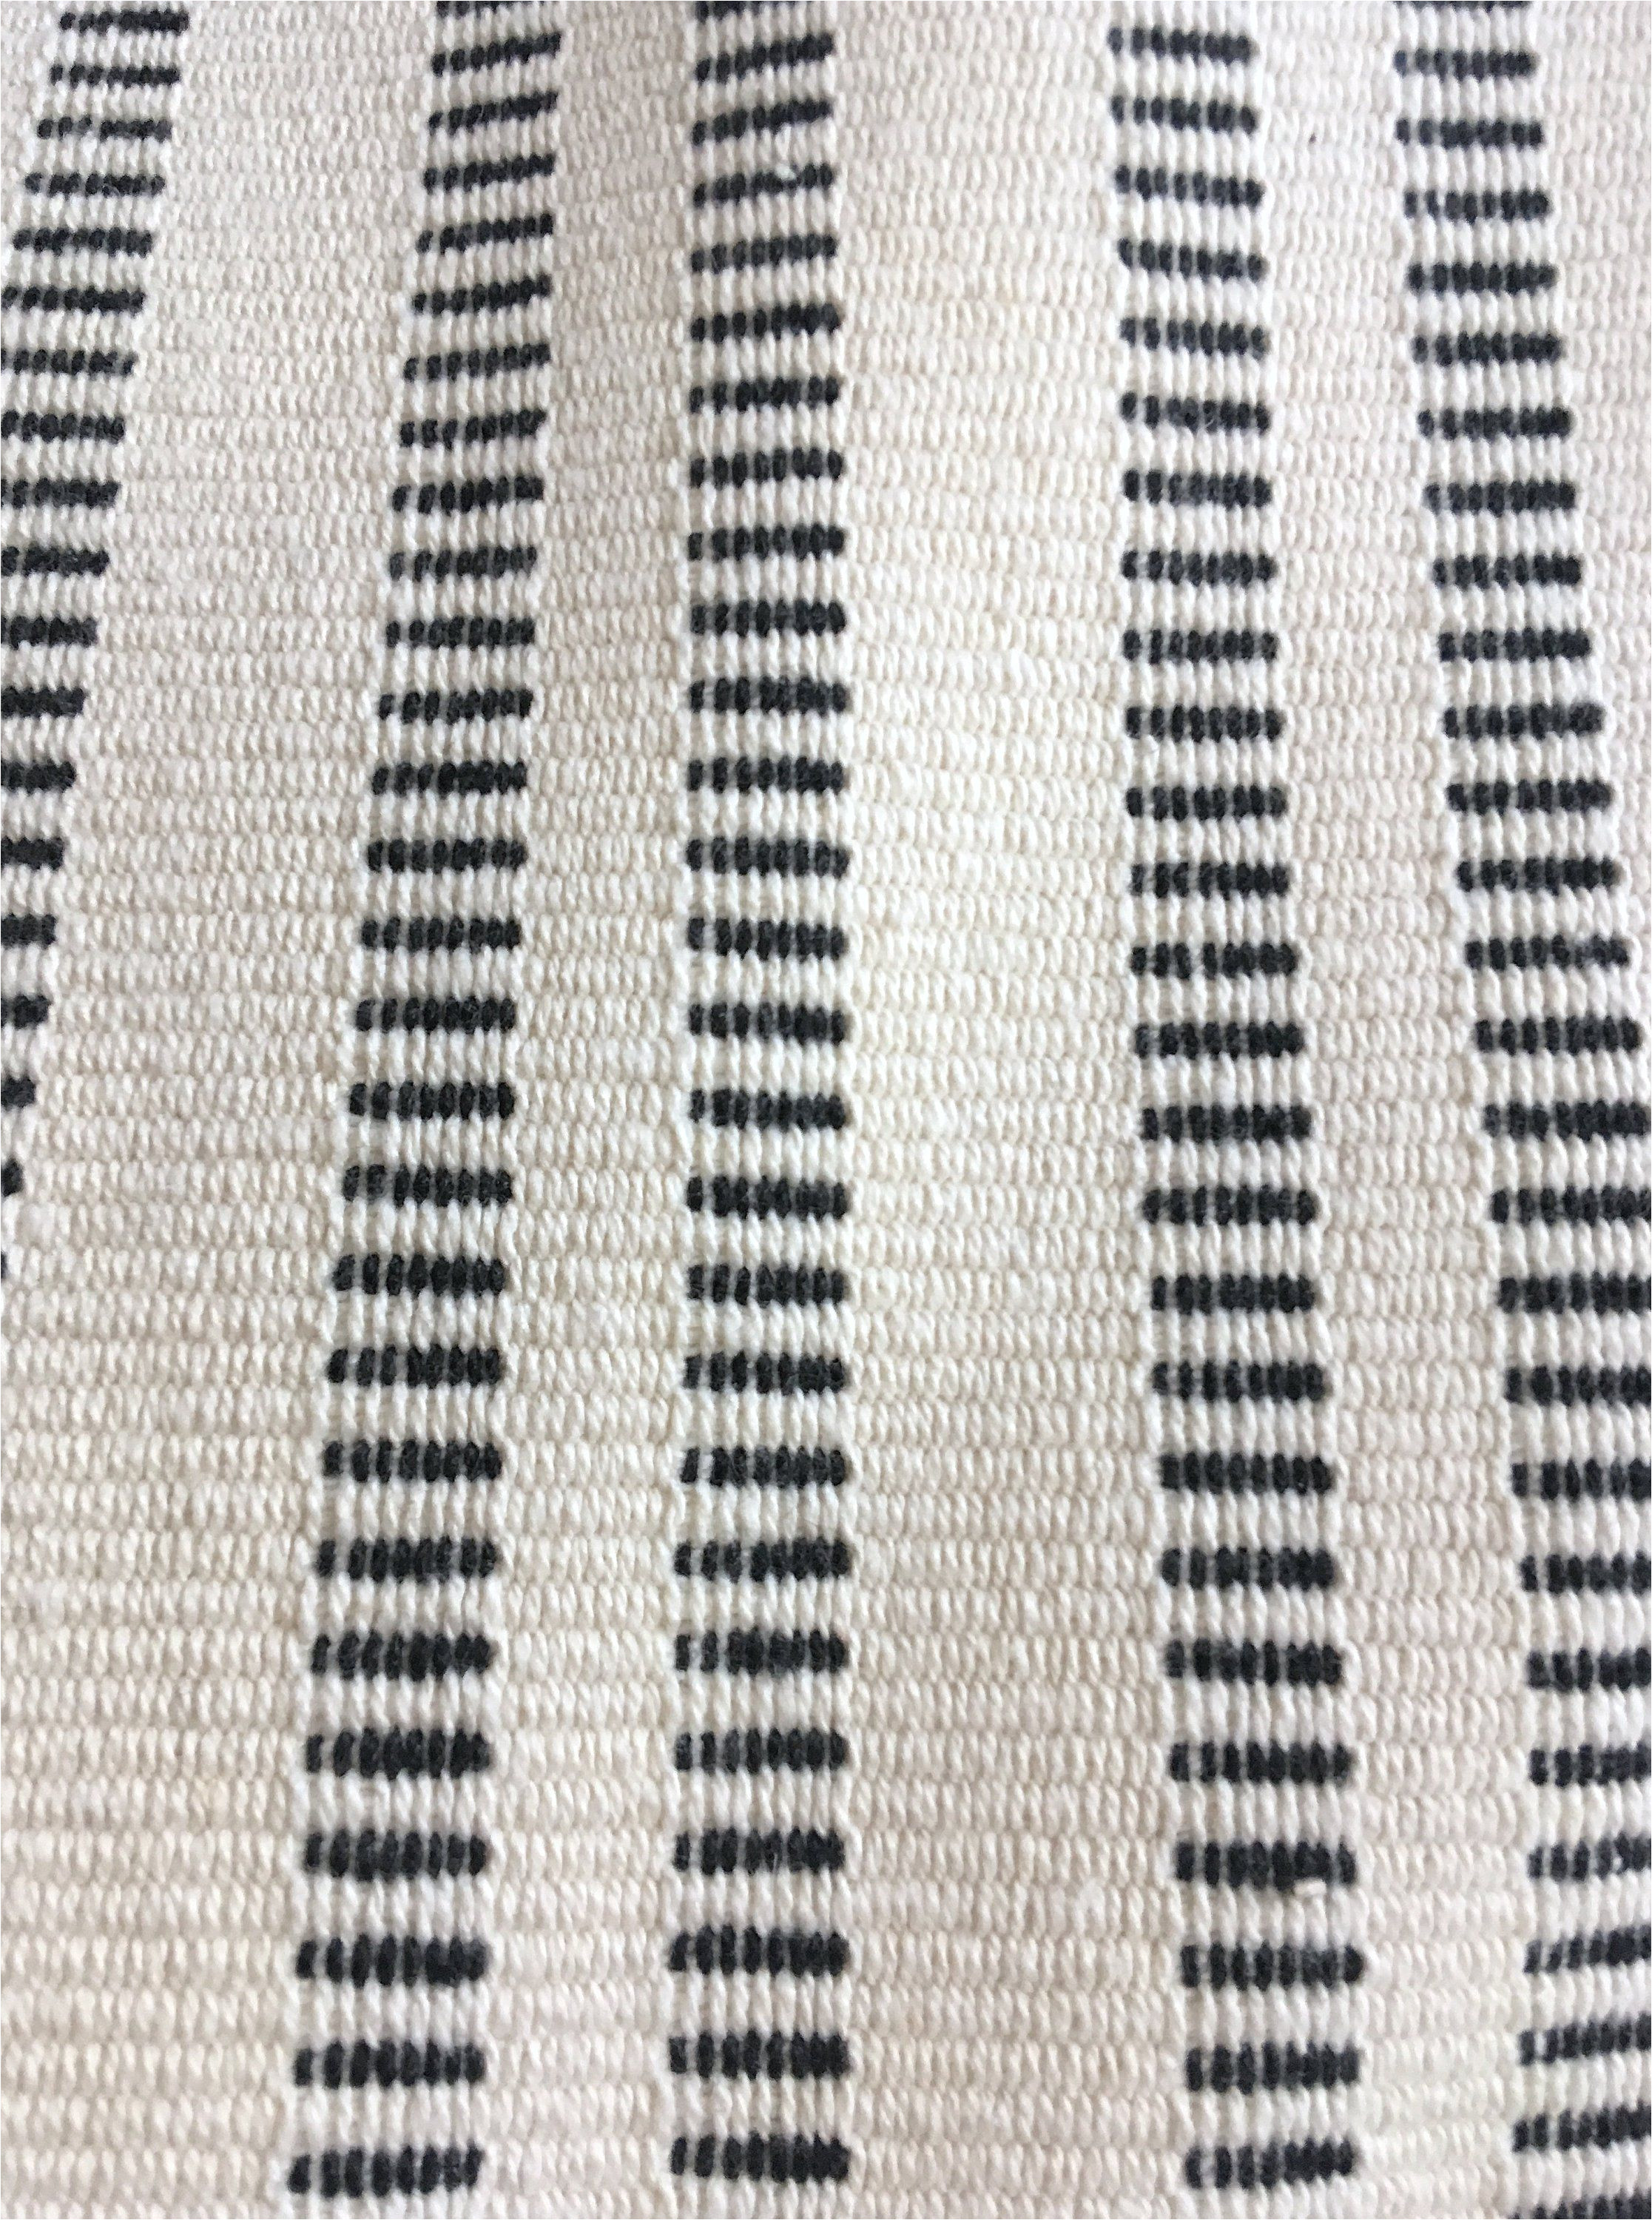 10 yards black ivory stripe upholstery fabric mudcloth fabric cotton upholstery minimalist heavyweight backed upholstery